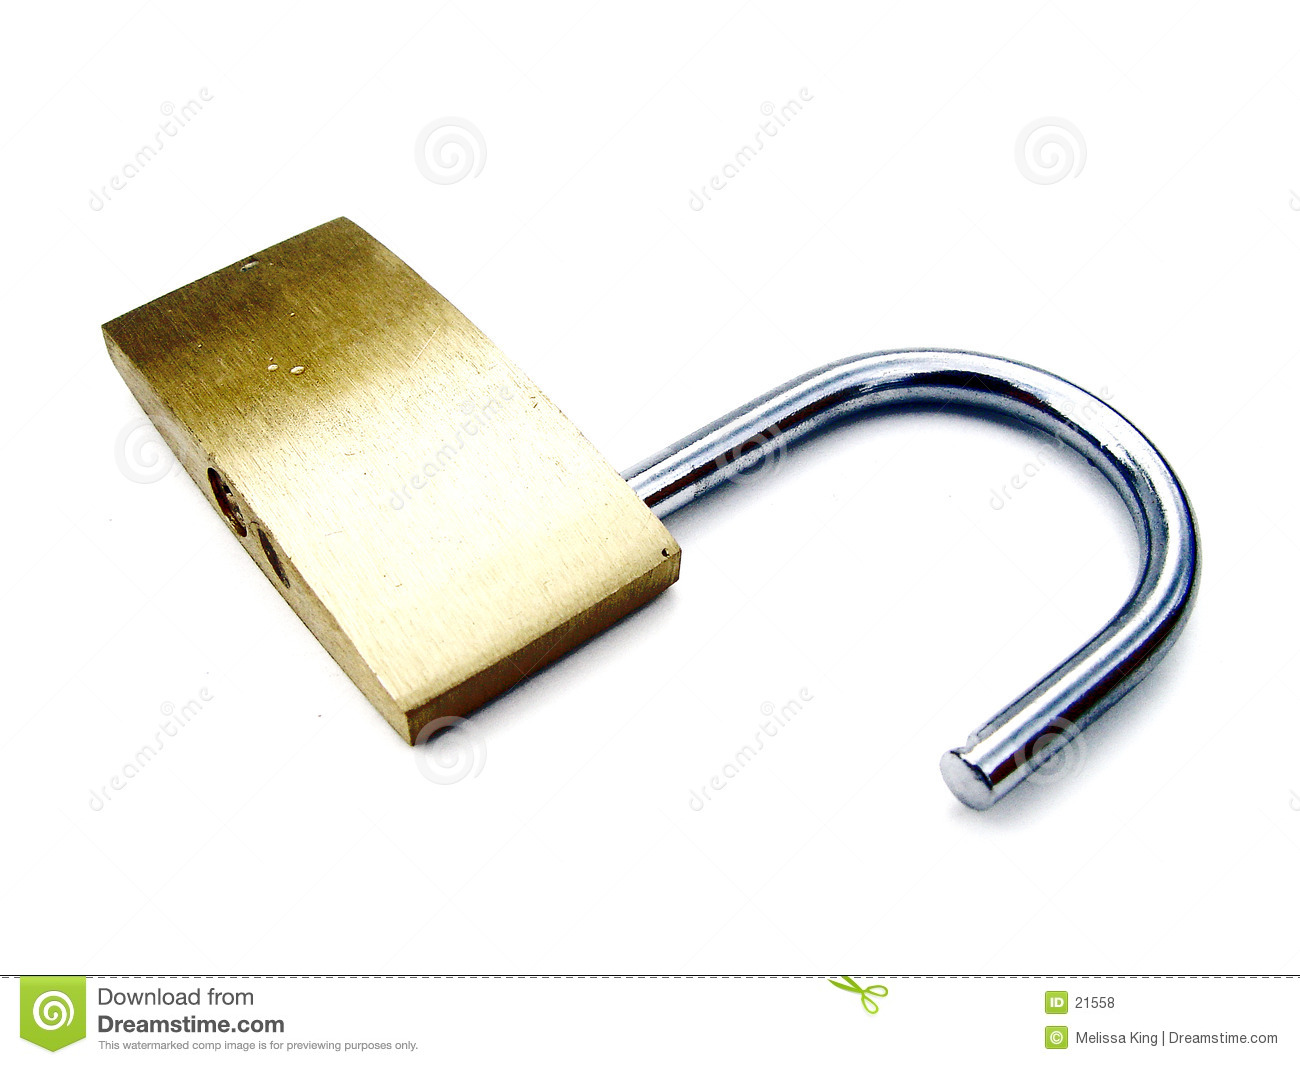 Unlocked Padlock - High Key